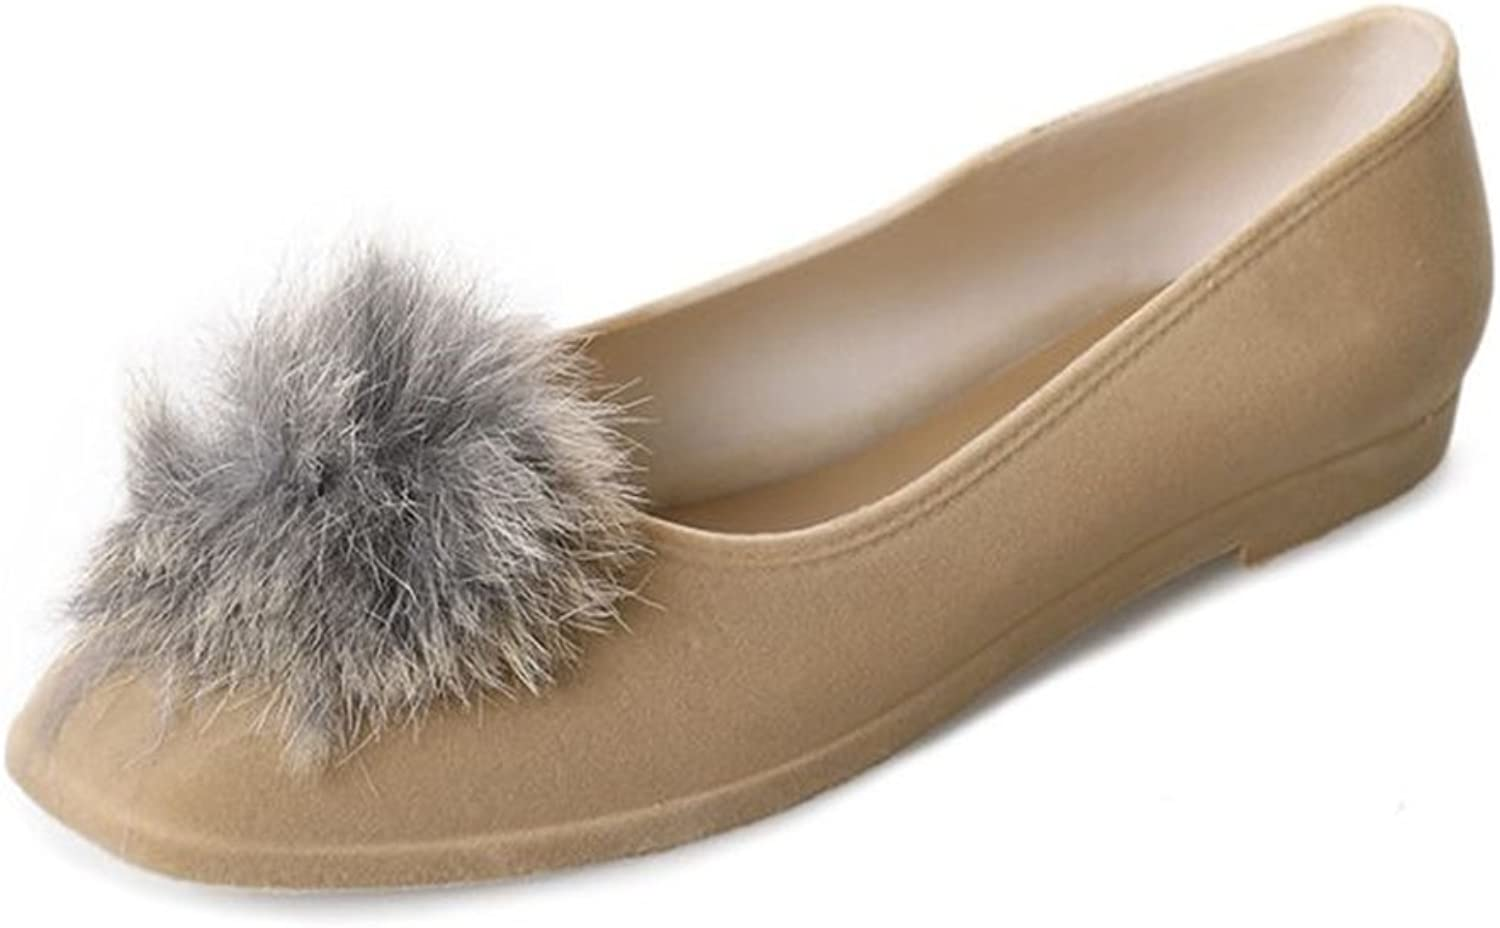 Set adil Womens Fur Slippers Slides Indoor Outdoor Flat Soles Soft Summer shoes